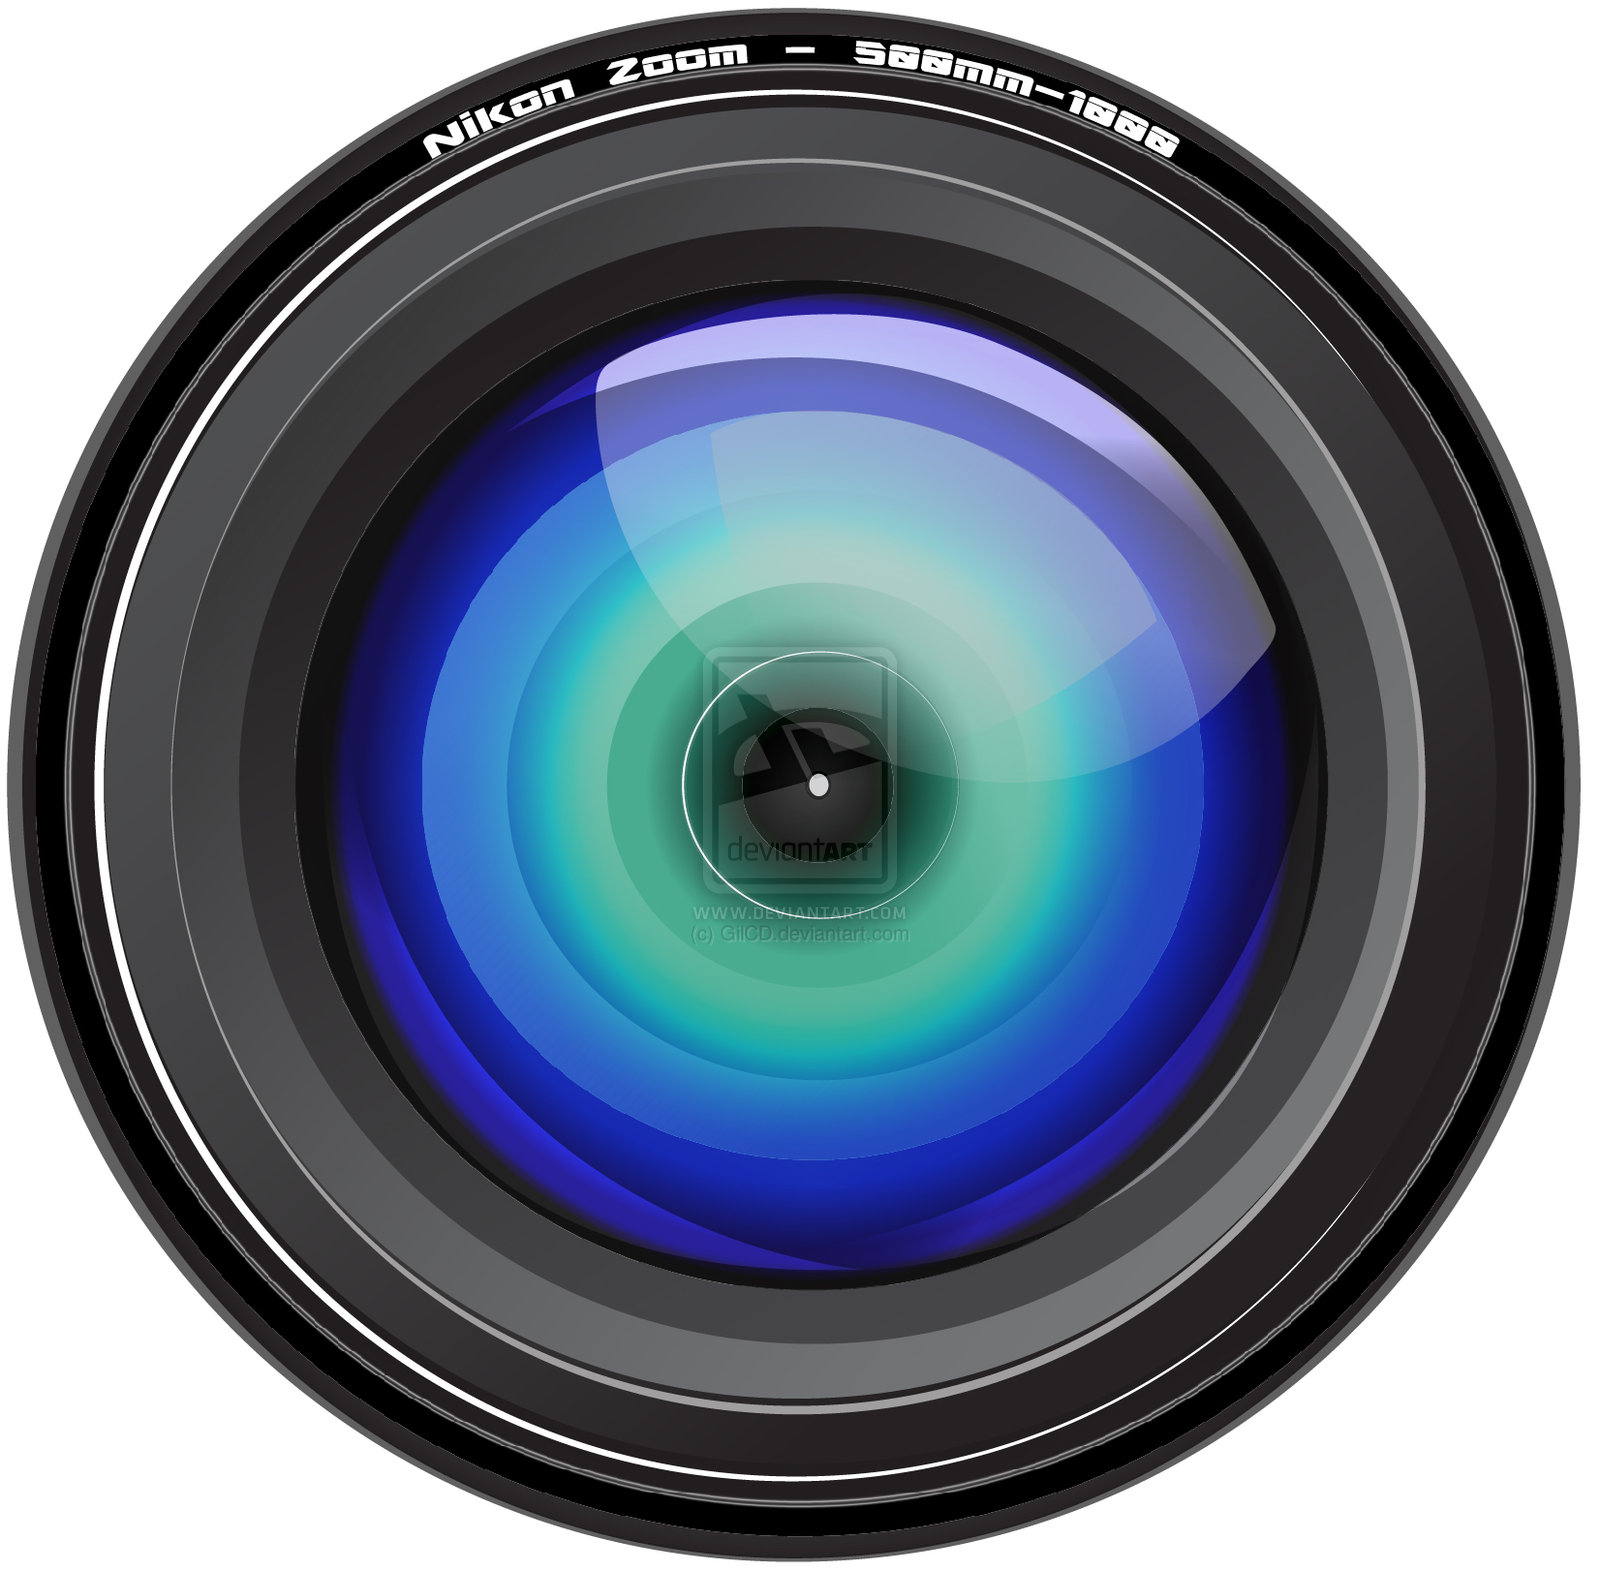 Camera lens clipart transparent 33+ Camera Lens Clipart | ClipartLook transparent